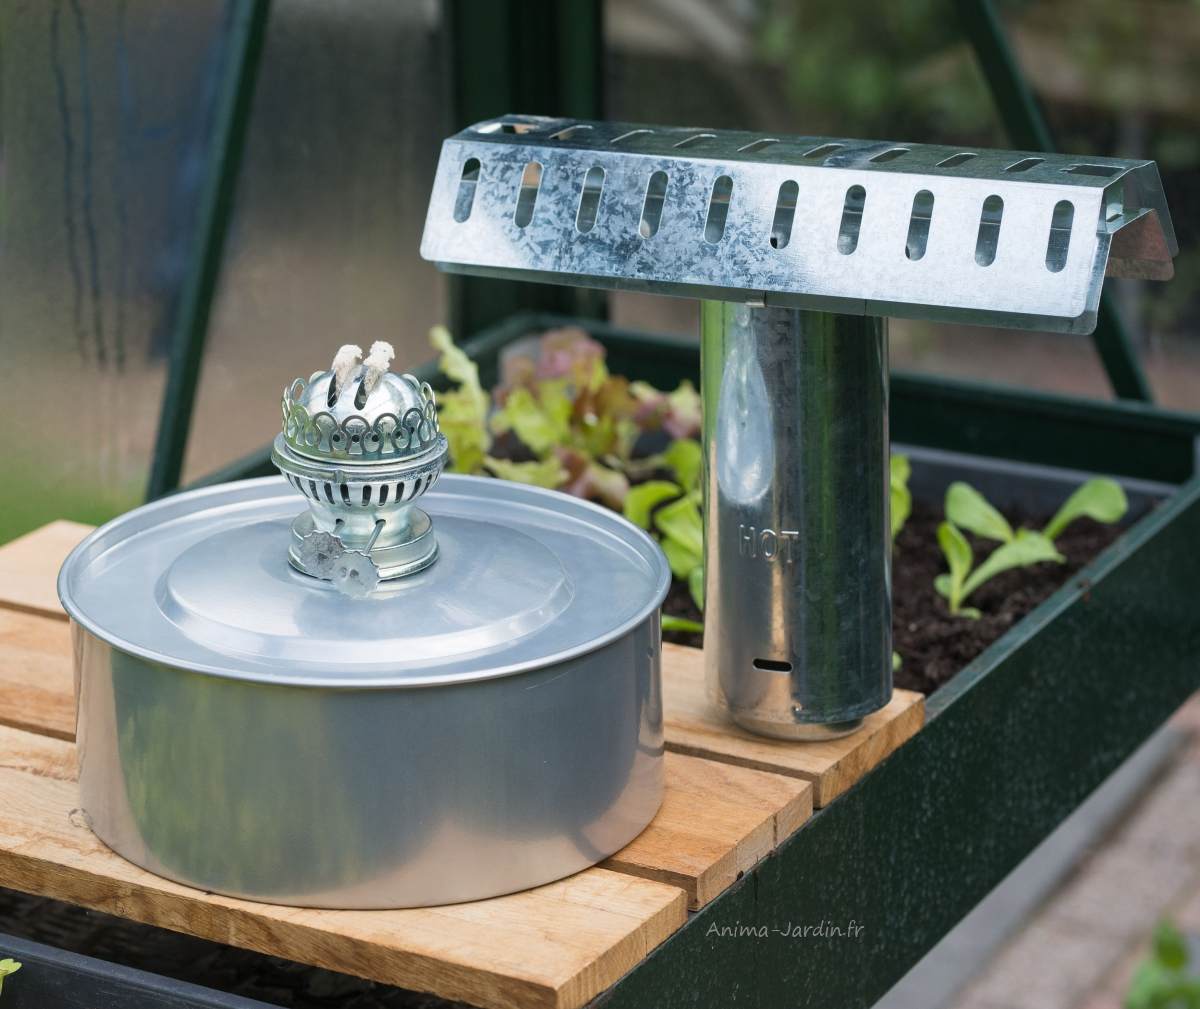 Chauffage -a-huile-pour-serre-jardin-protection-froid-anima-jardin.fr